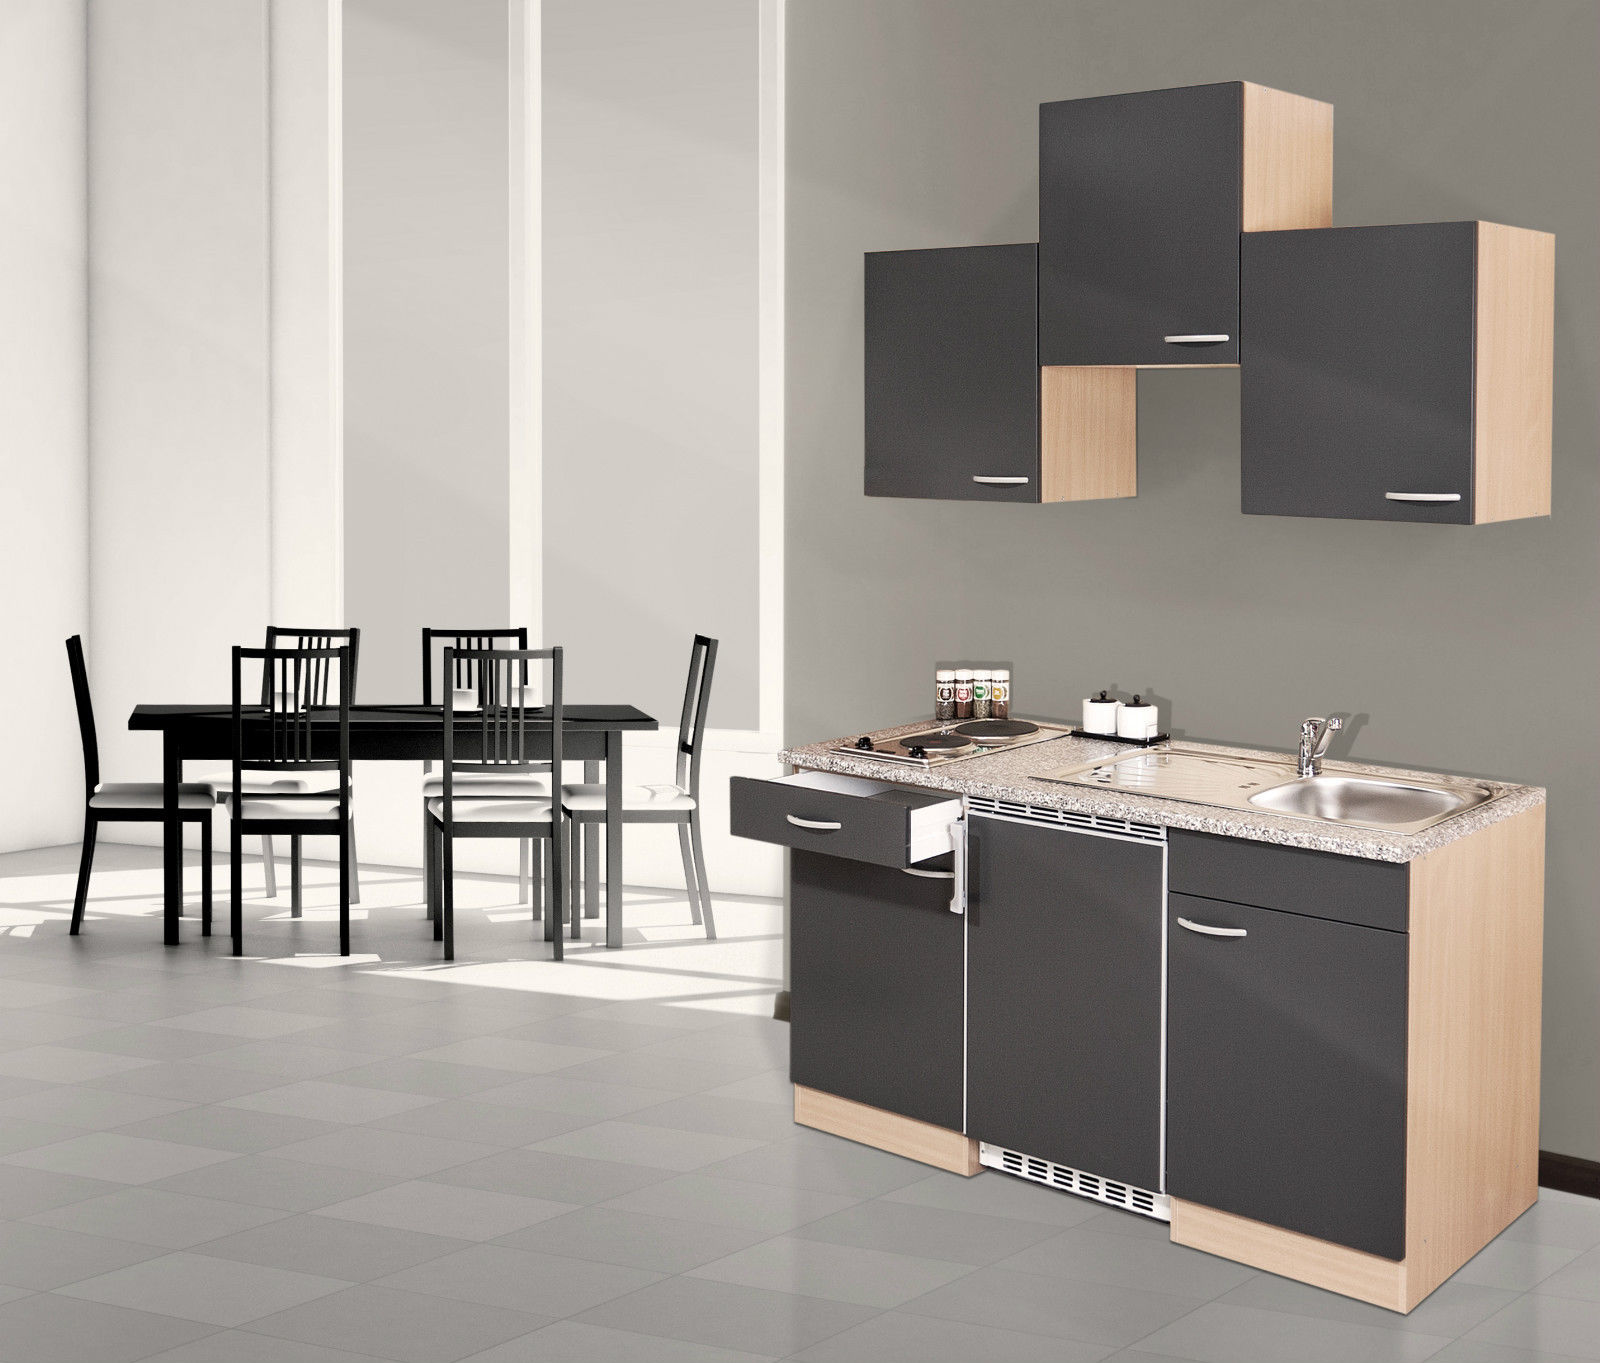 respekta single einbau mini k che k chenzeile k chenblock. Black Bedroom Furniture Sets. Home Design Ideas